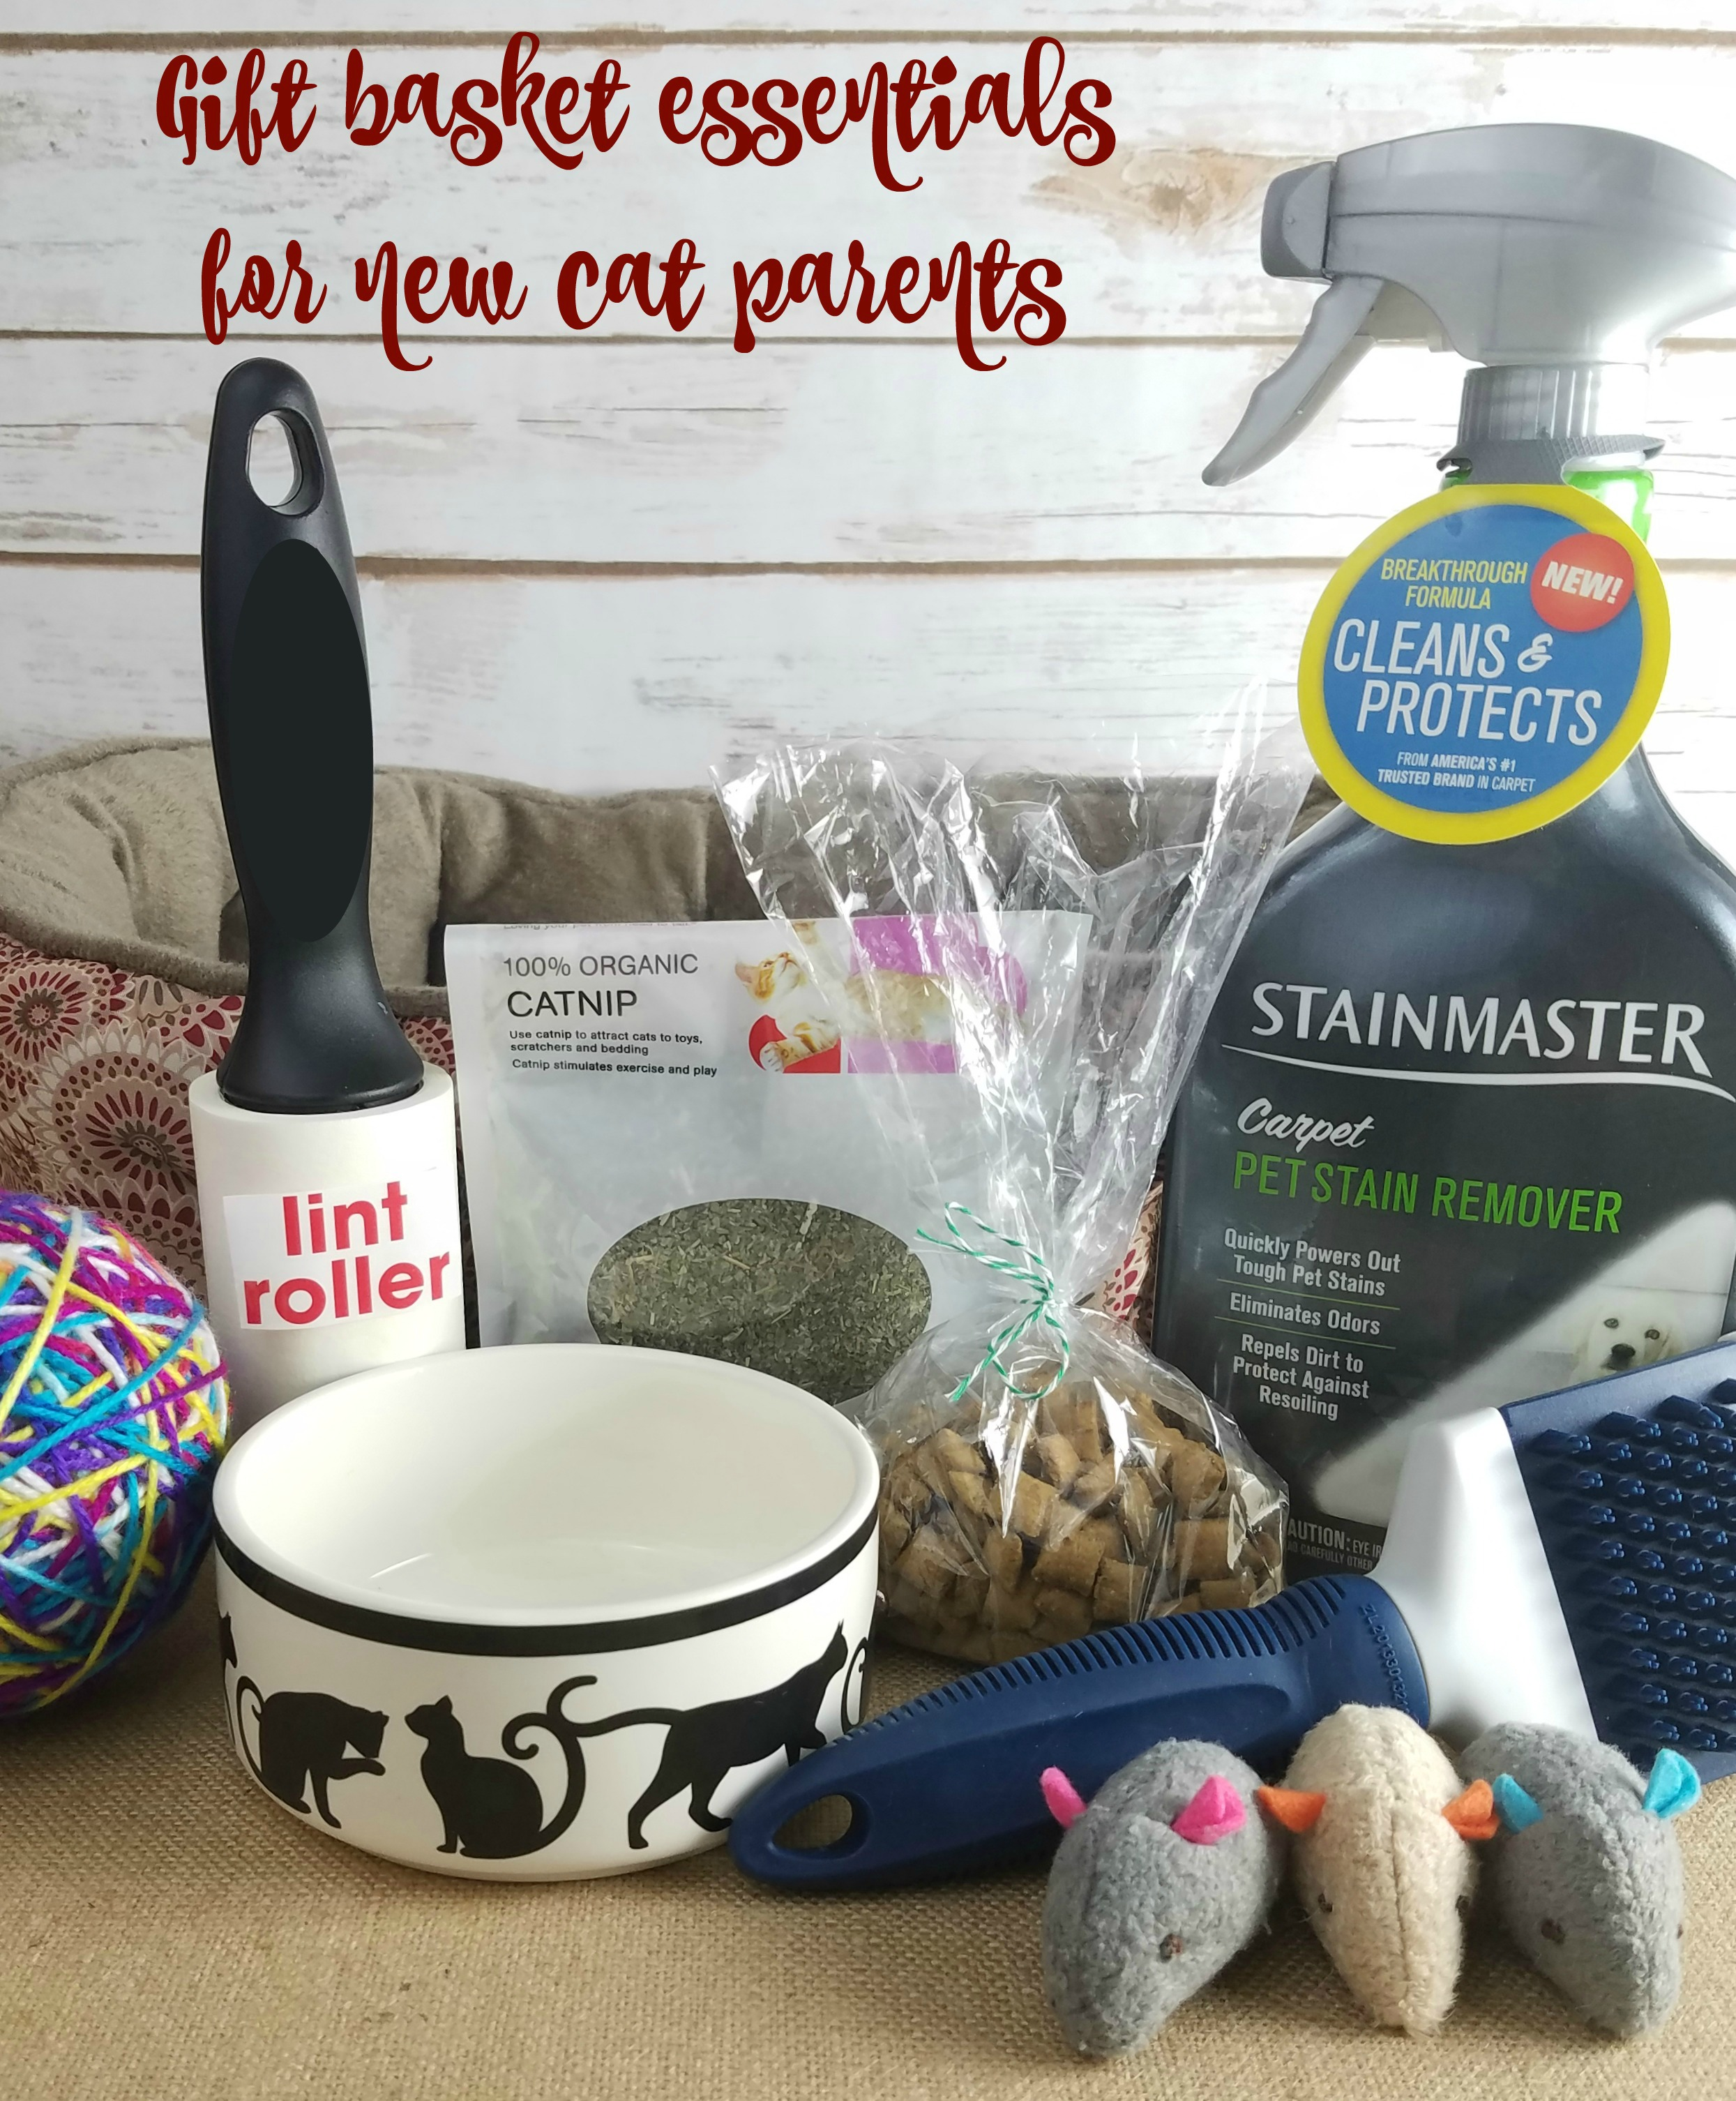 Gift Basket For New Cat Parents